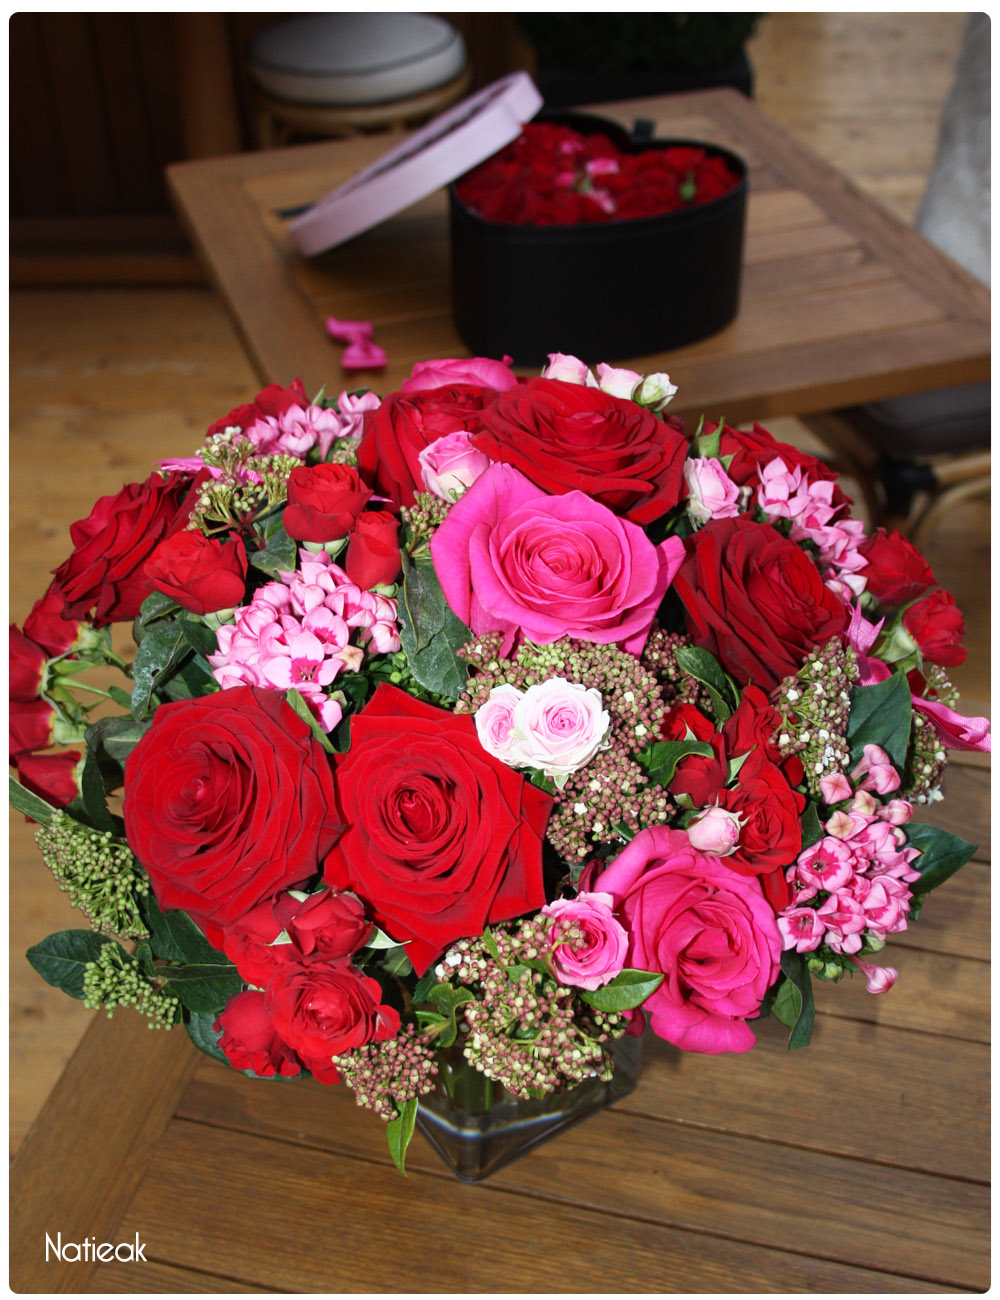 Bouquet l'Audacieuse d'Interflora et Chantal Thomass Saint-Valentin